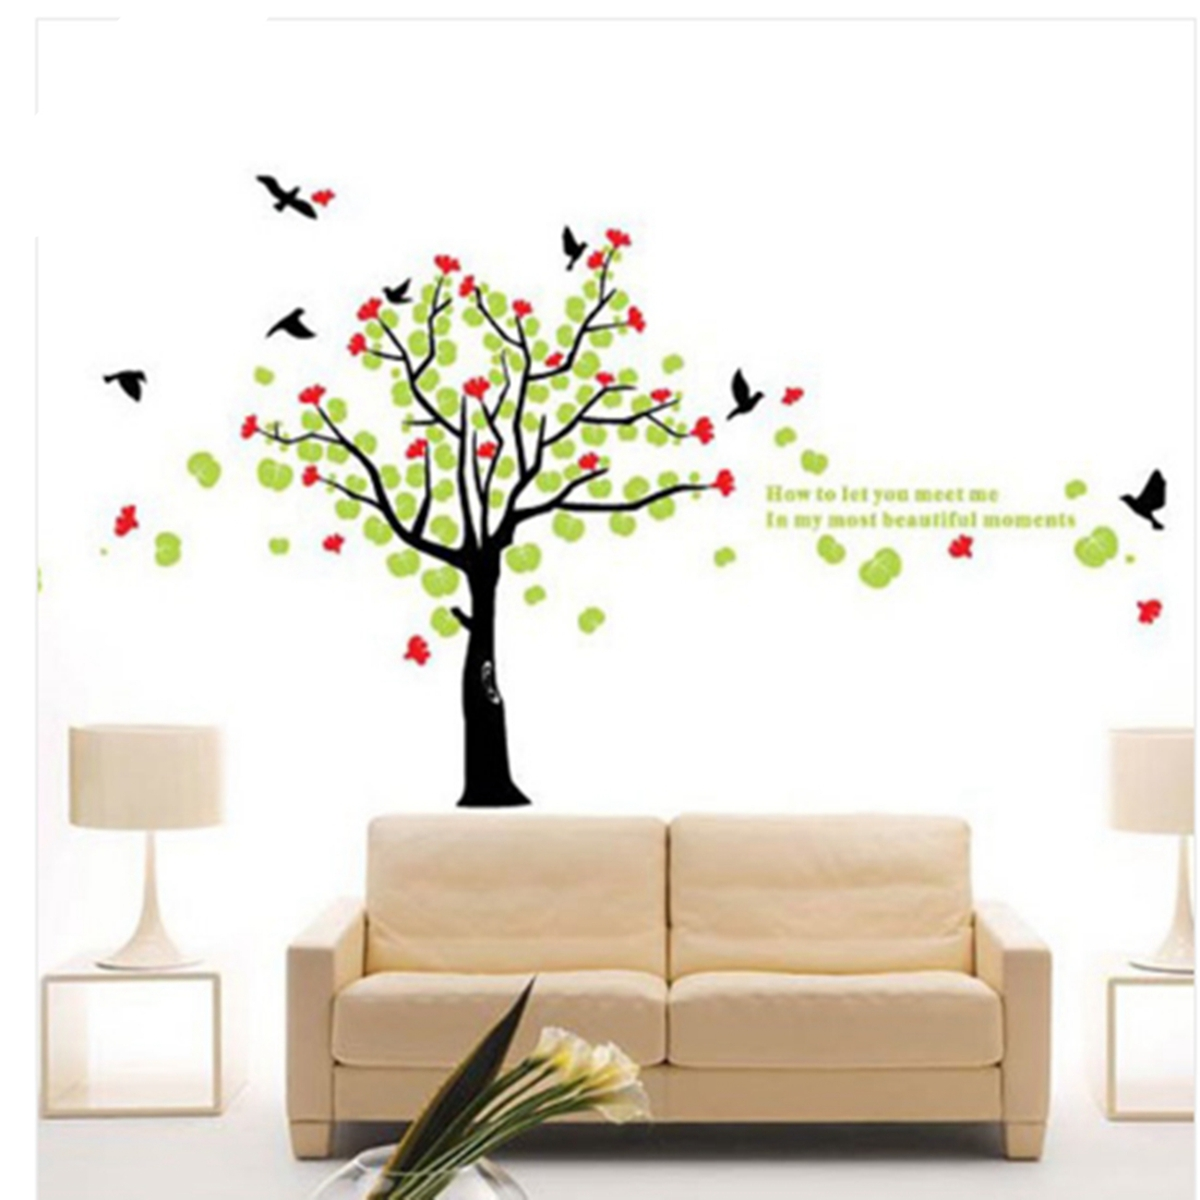 Family Wall Decor Diy : Family diy removable art vinyl quote wall stickers decal